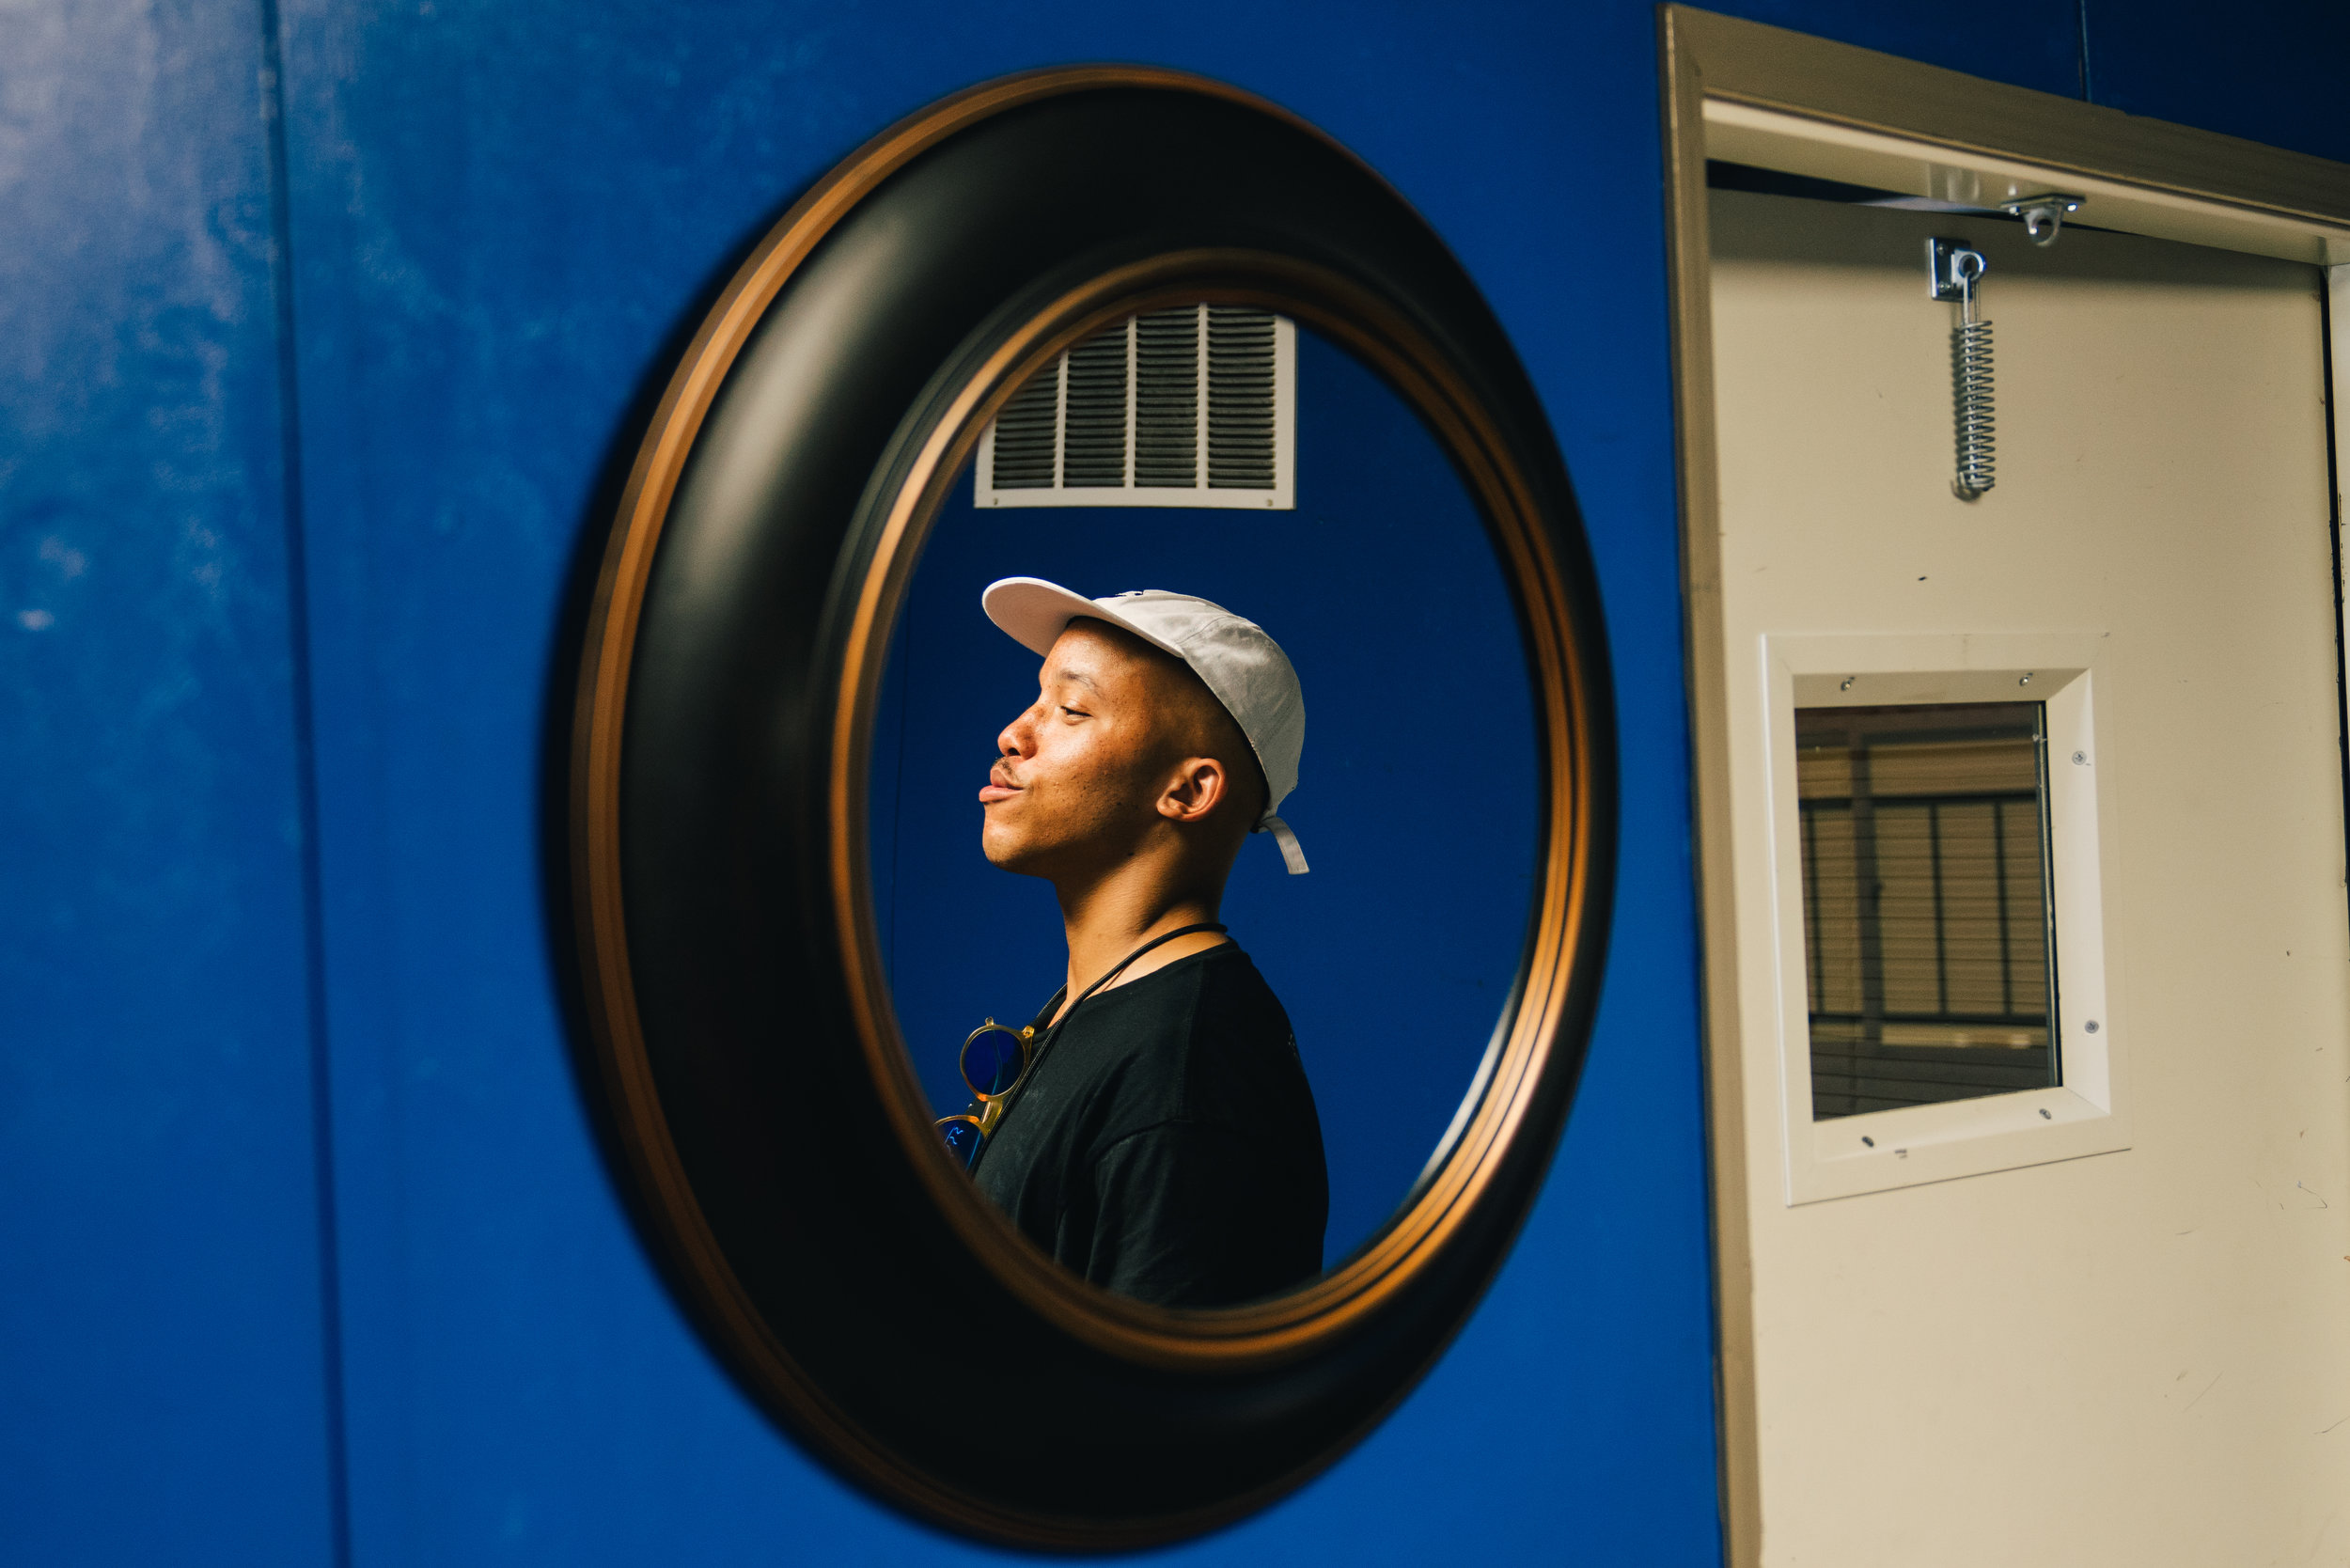 Ricky, our VIP specialist, shot through a mirror in the Austin greenroom